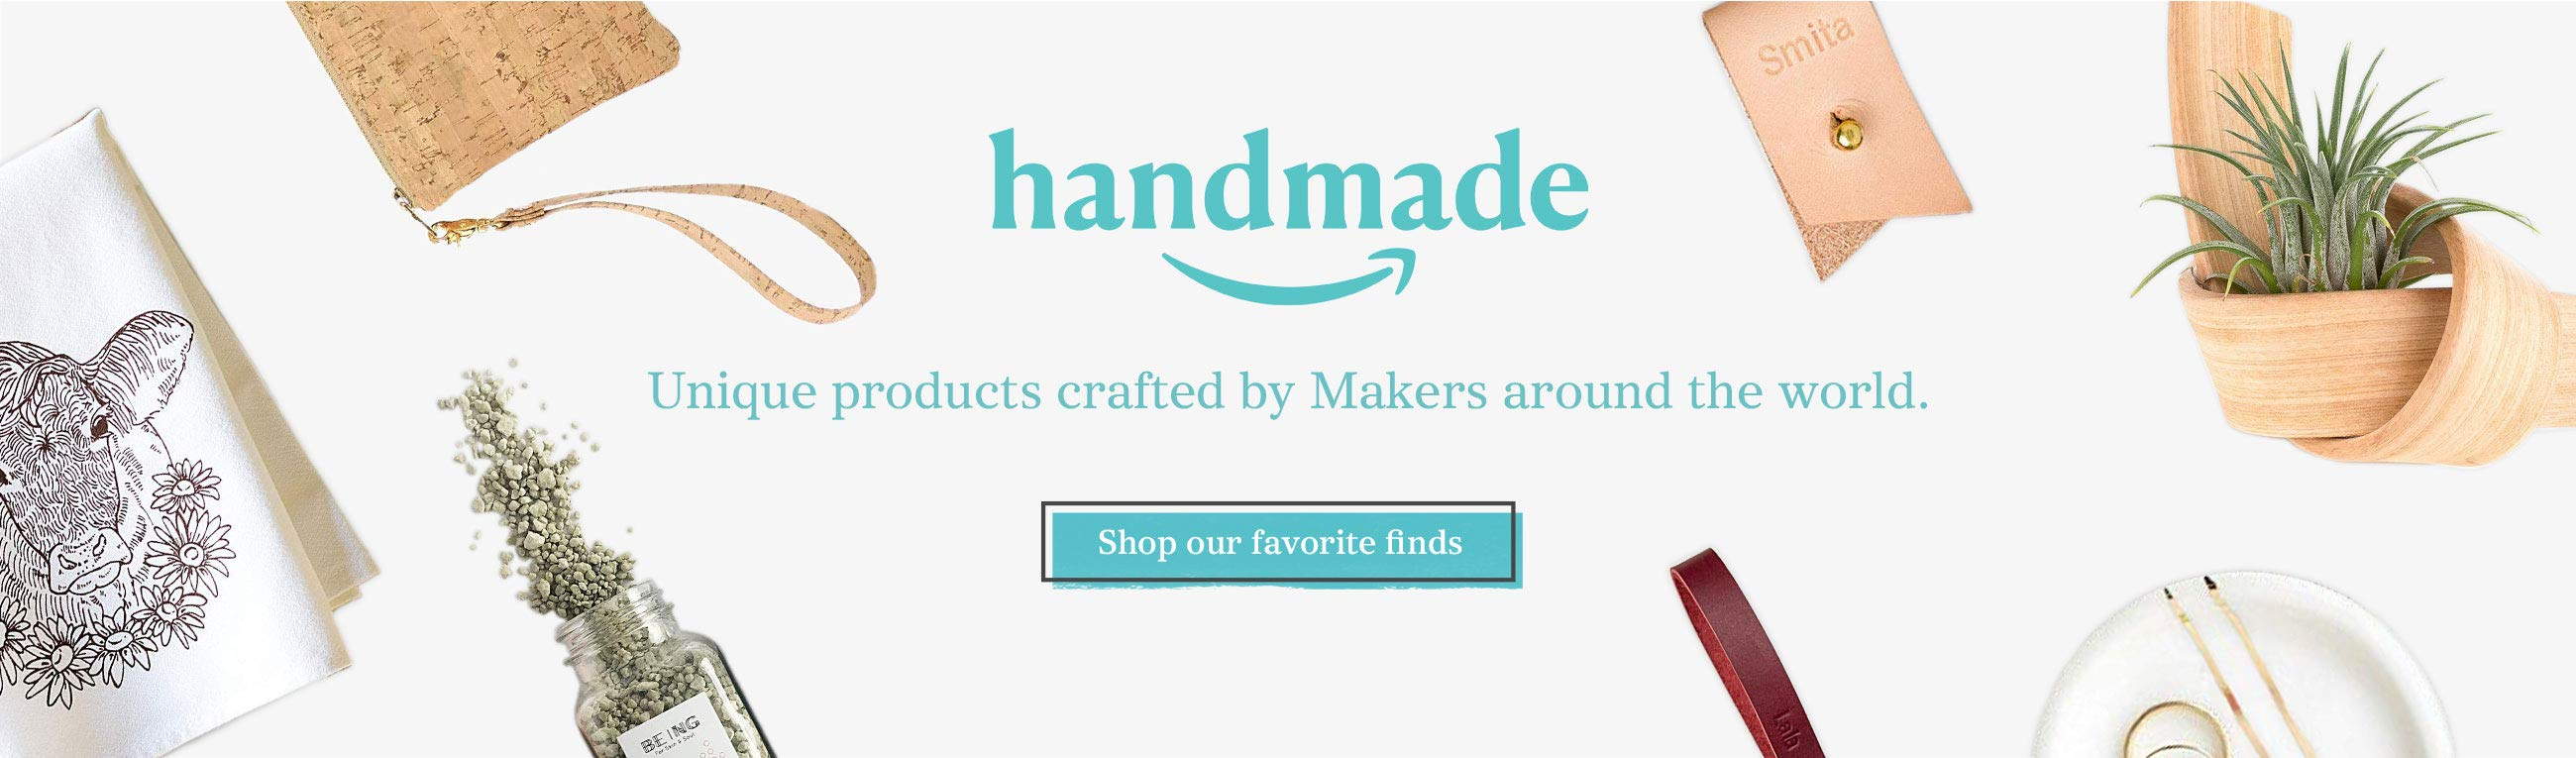 Amazon Handmade Favorite Finds